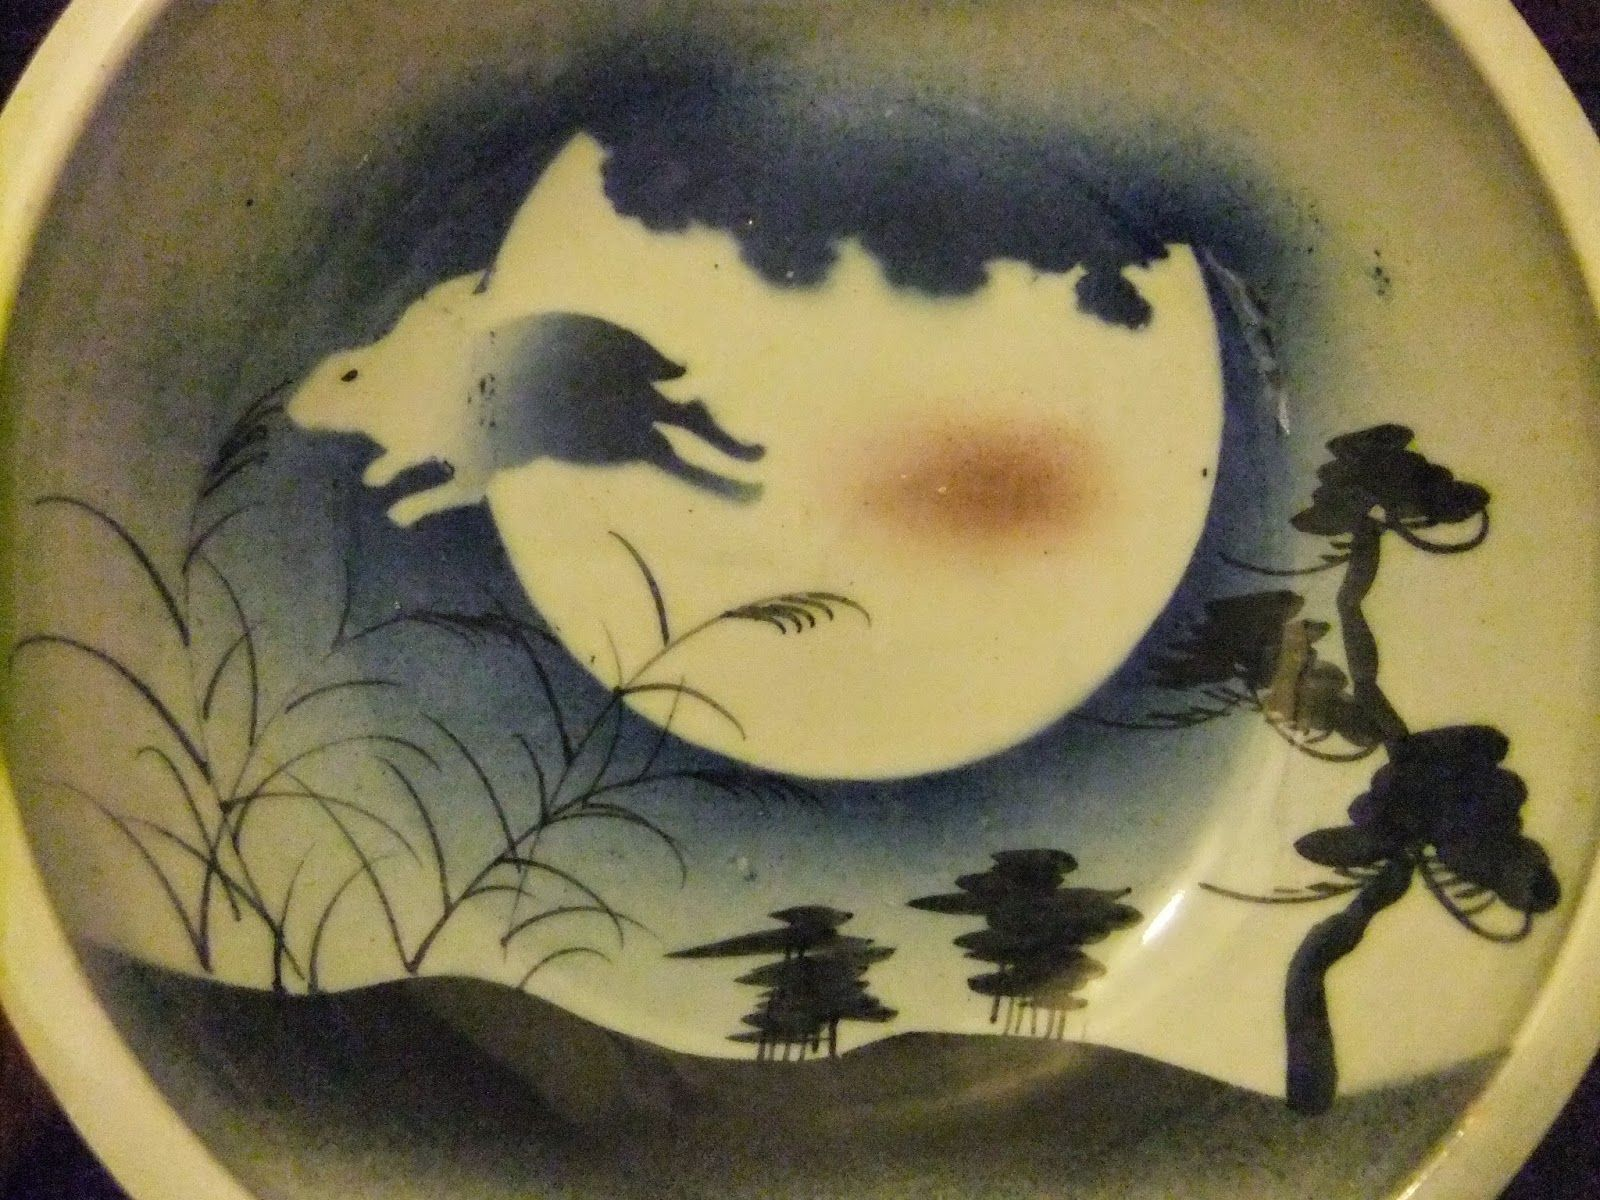 In the lunar calender this year, we have a moon viewing days of the full moon for three times in Sept.,  Oct.,  and Nov. Thus, I have my moon-viewing plate with a rabbit and moon motifs still out on a counter.